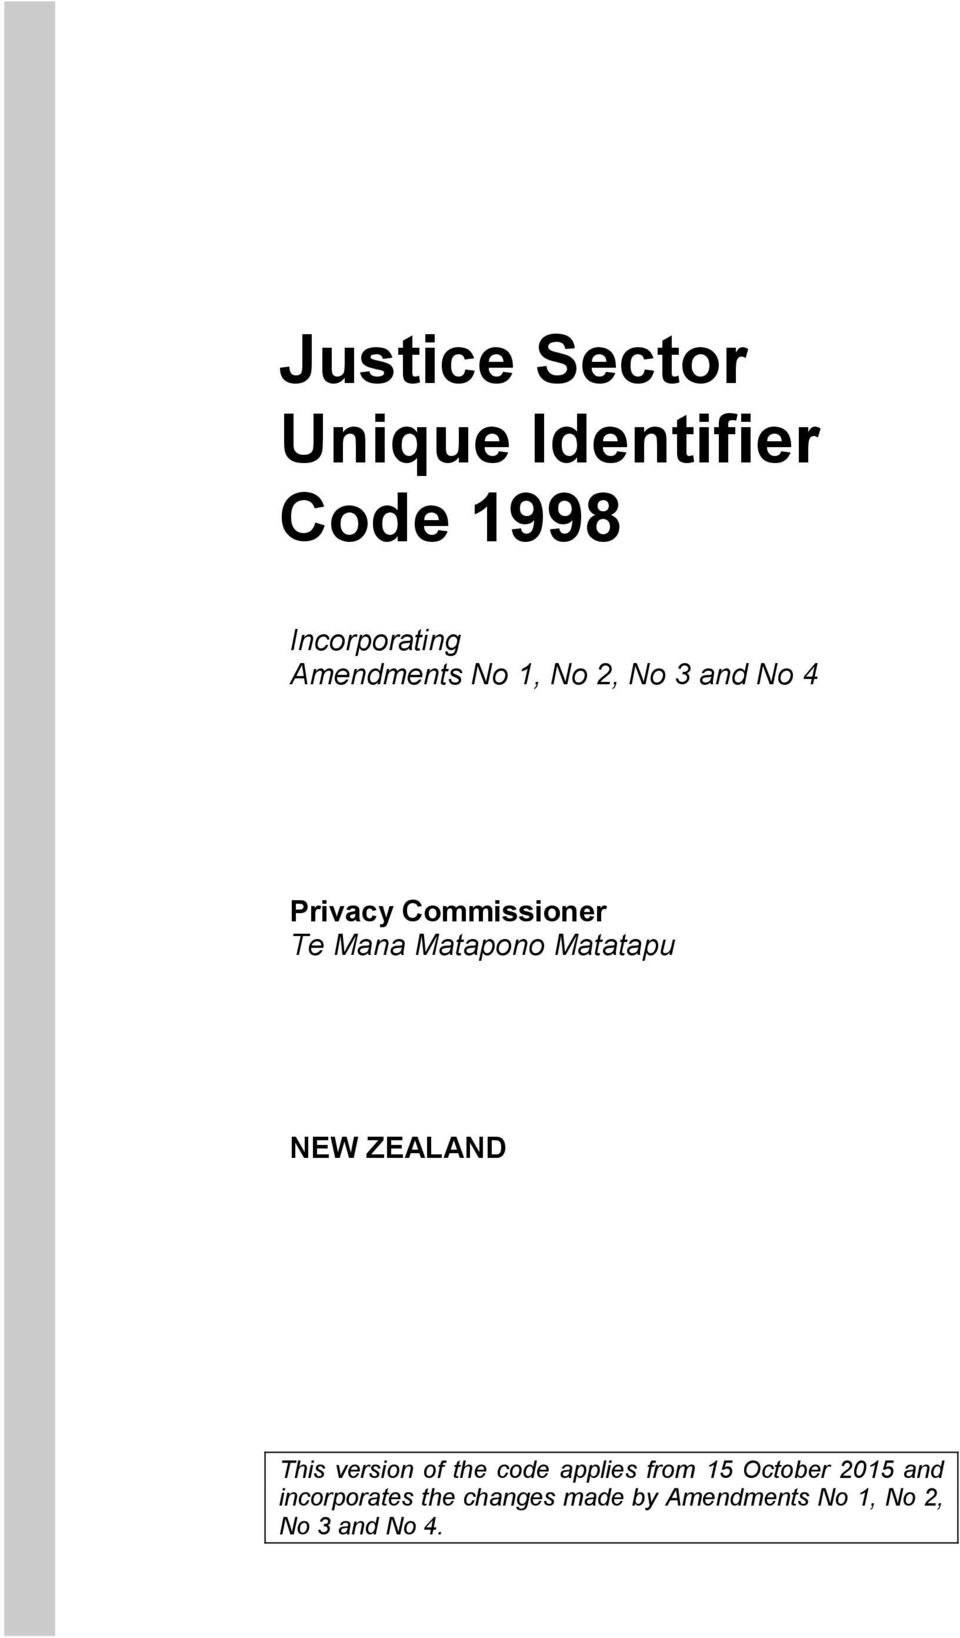 NEW ZEALAND This version of the code applies from 15 October 2015 and